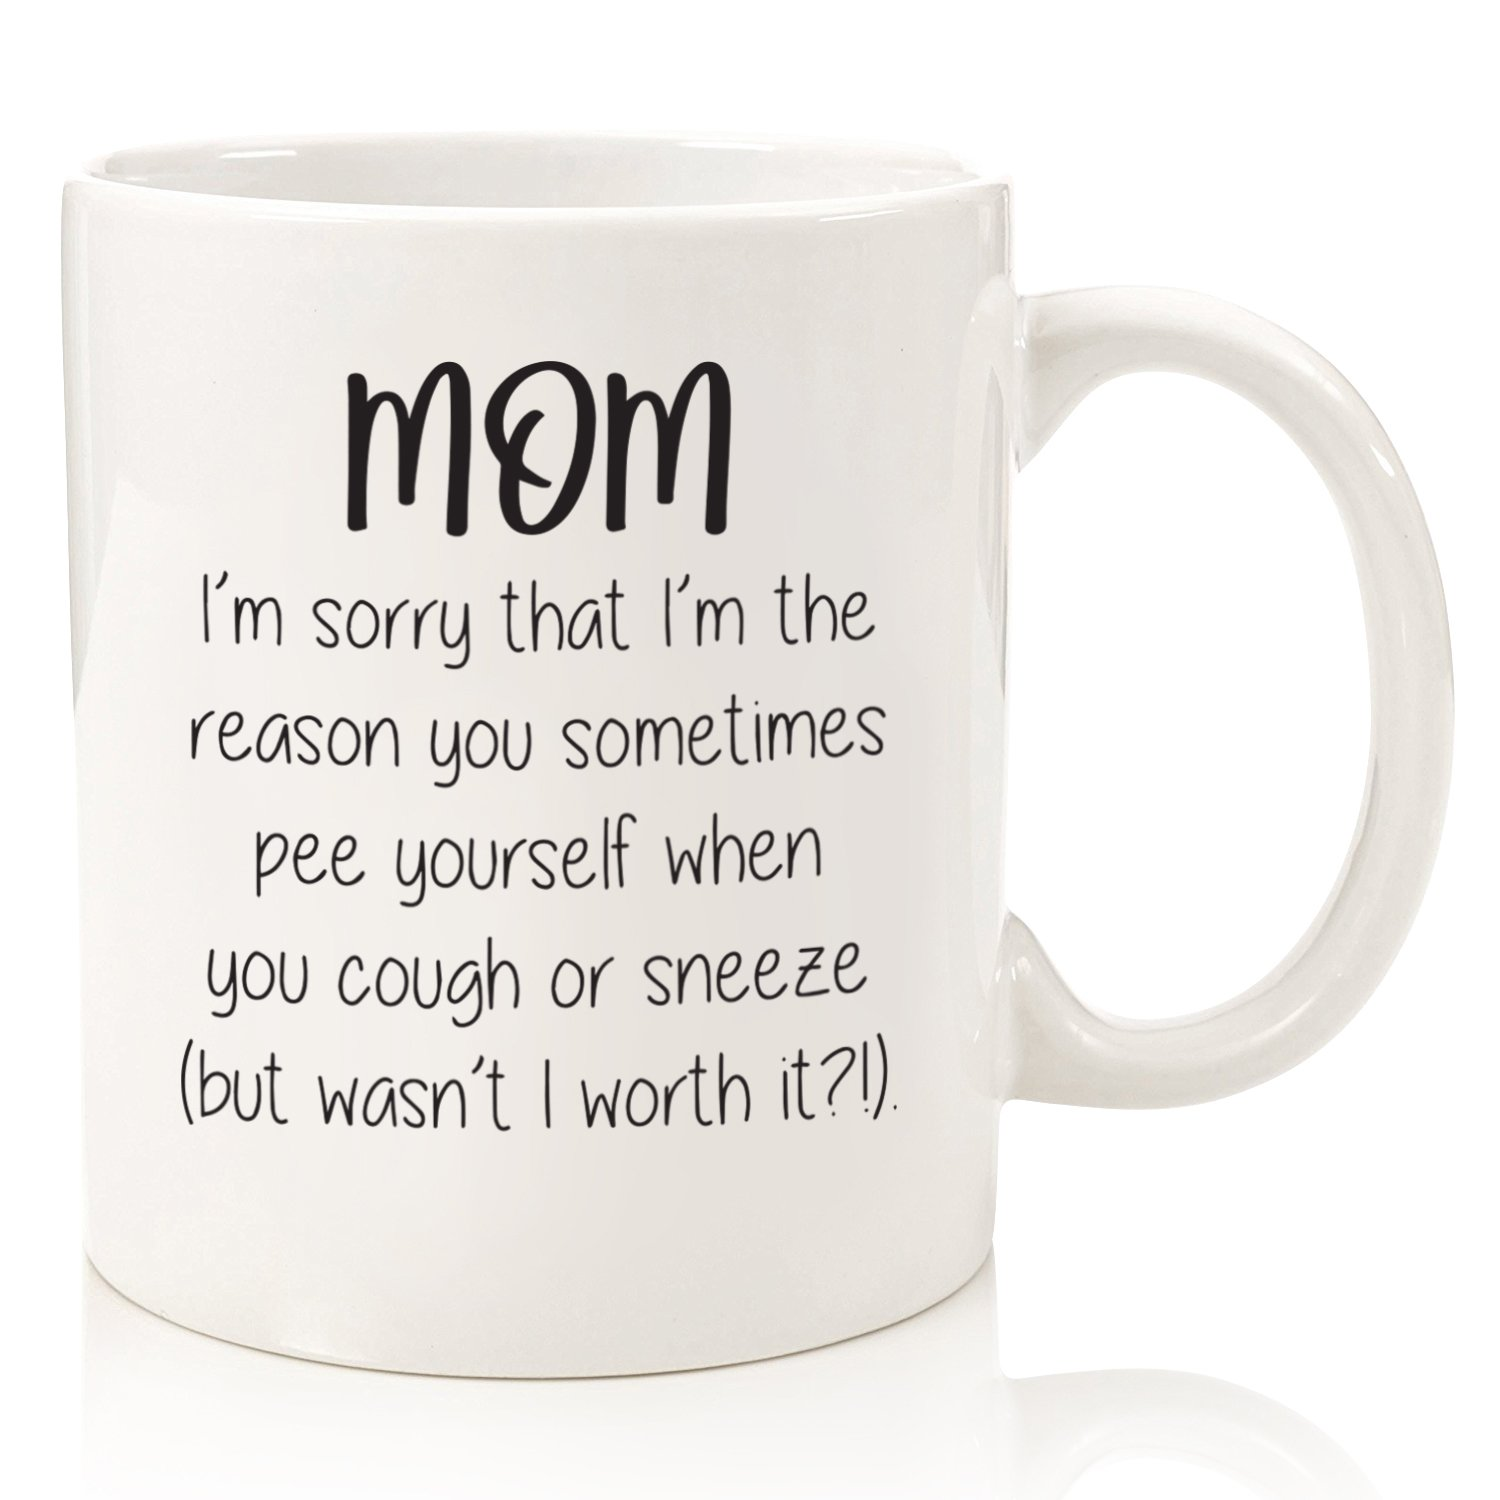 Funny Mom Mug - Sorry You P_e Yourself - Best Gifts For Mom, Women - Unique Mothers Day Gag Gift Idea For Her From Daughter, Son - Fun Birthday Present For a Mother - Cool Novelty Coffee Cup - 11 oz